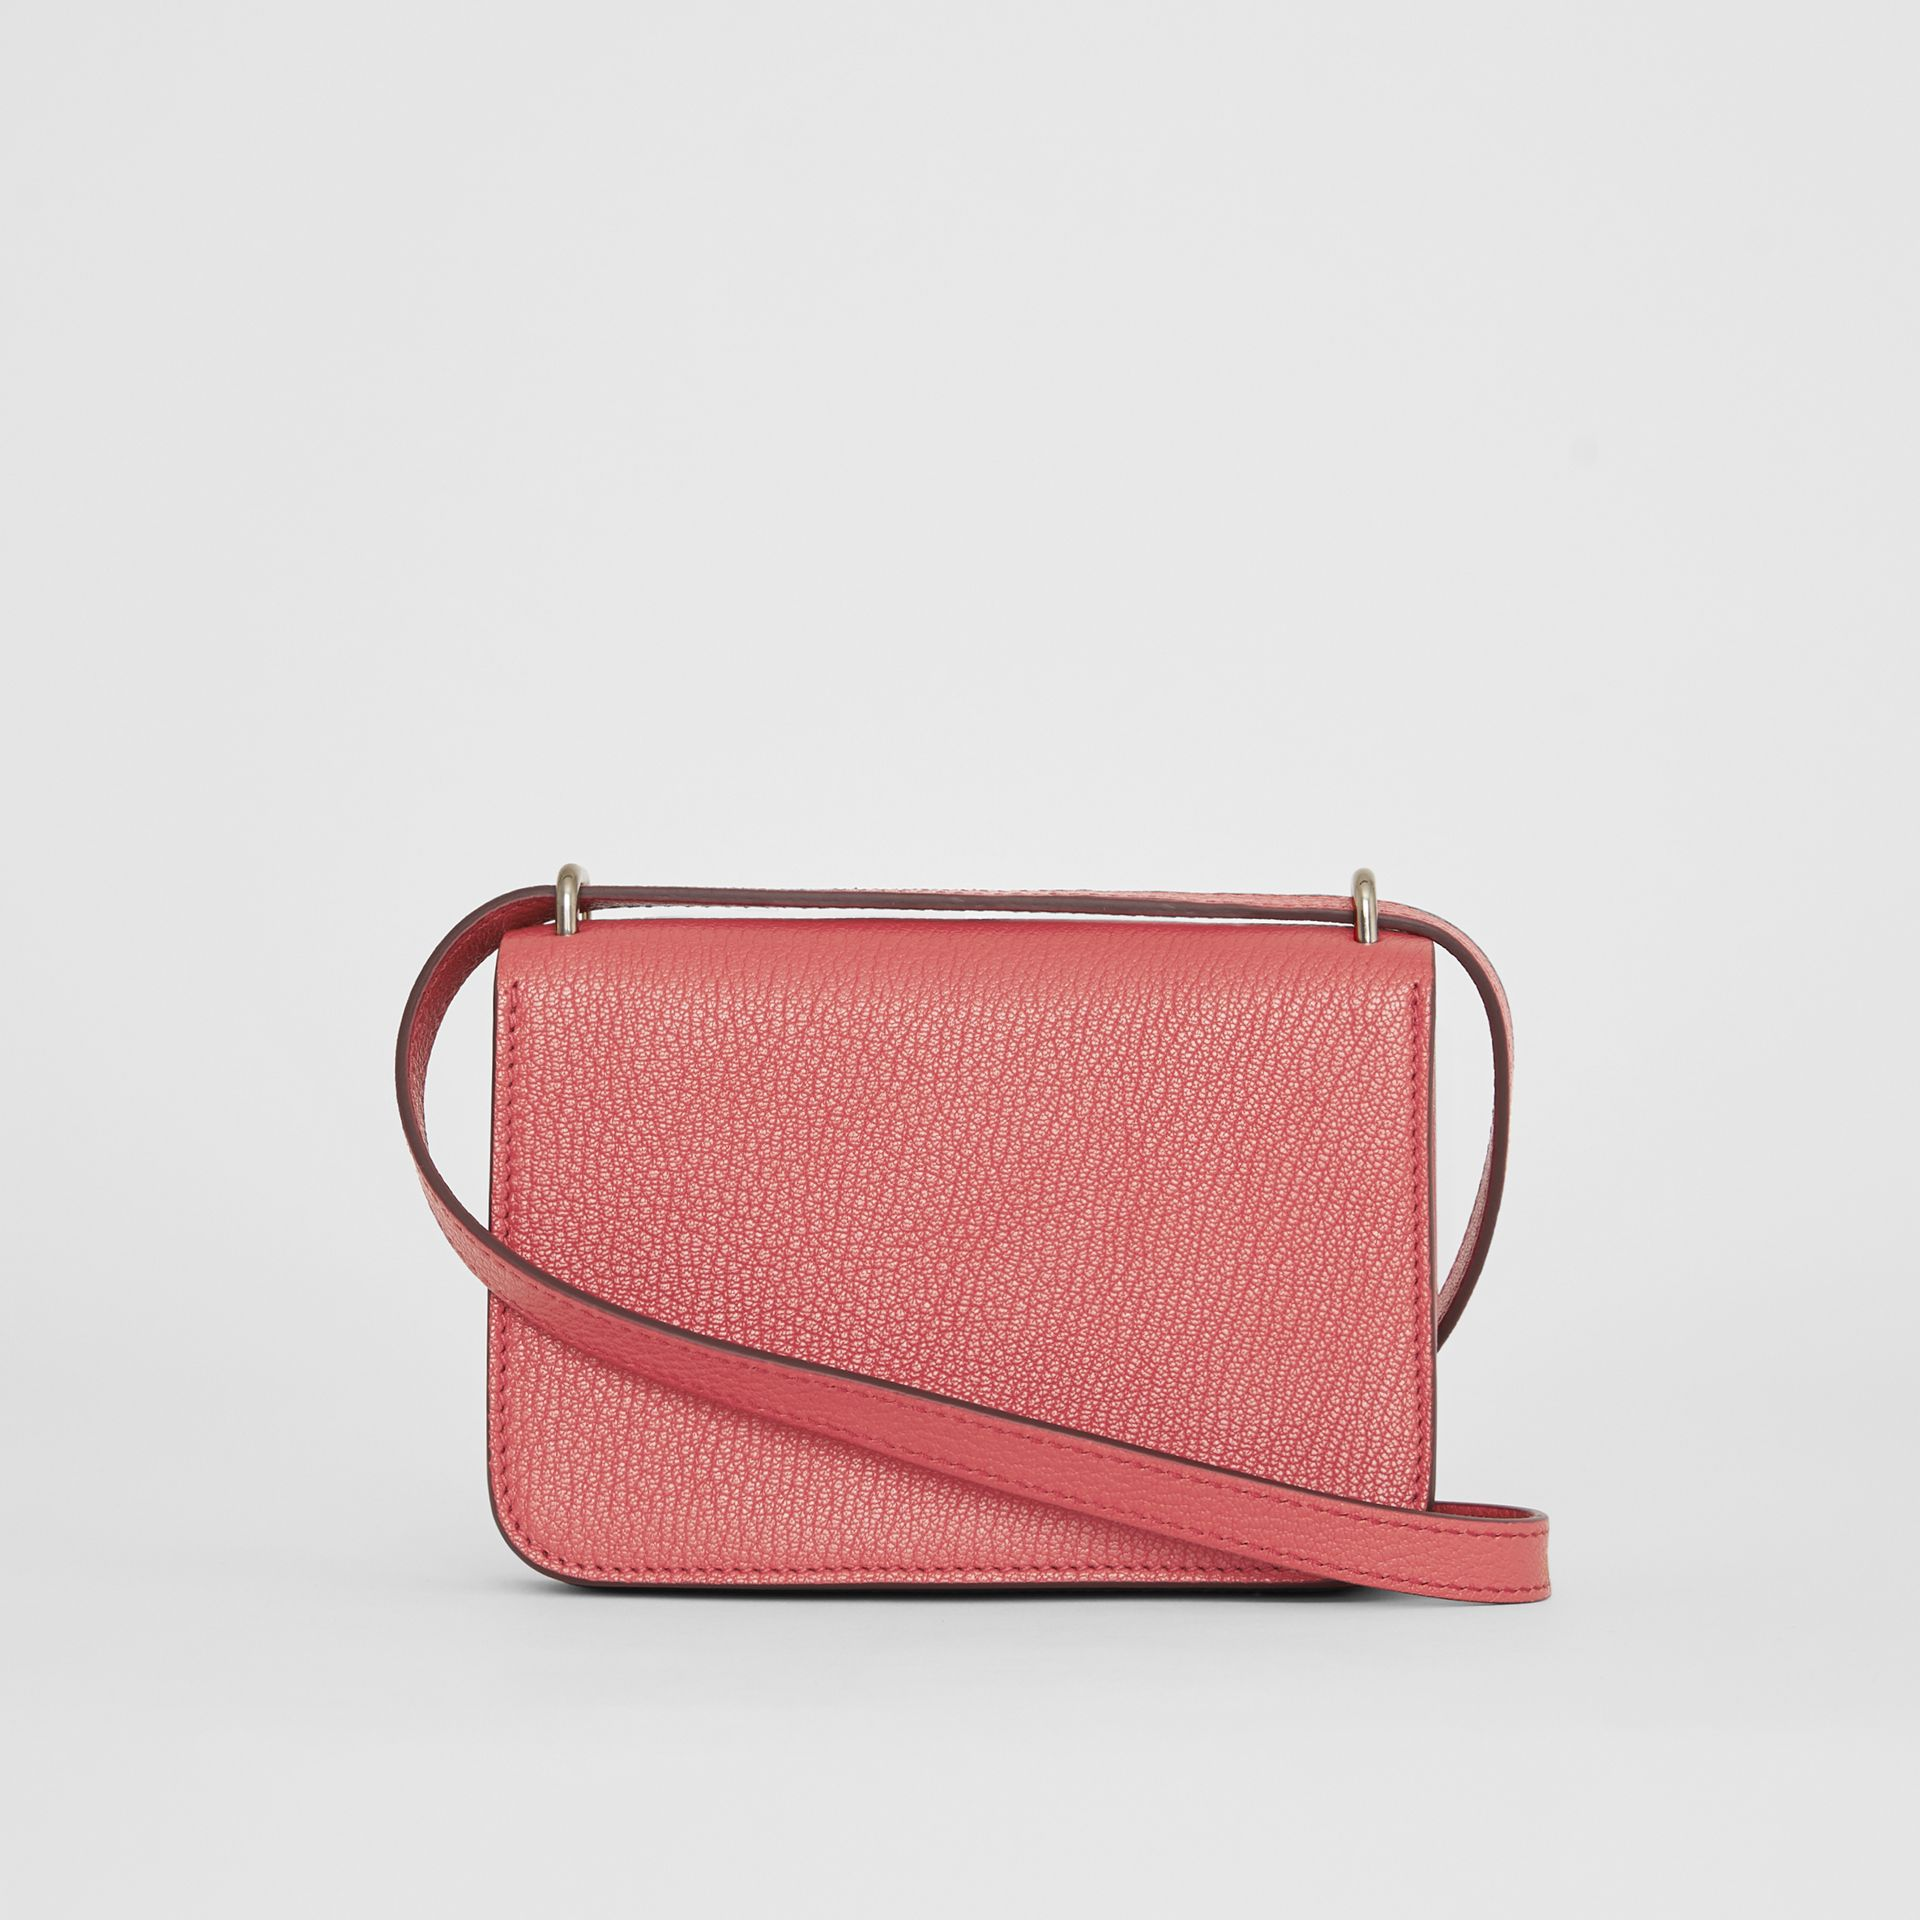 The Mini Leather D-ring Bag in Bright Coral Pink - Women | Burberry - gallery image 7